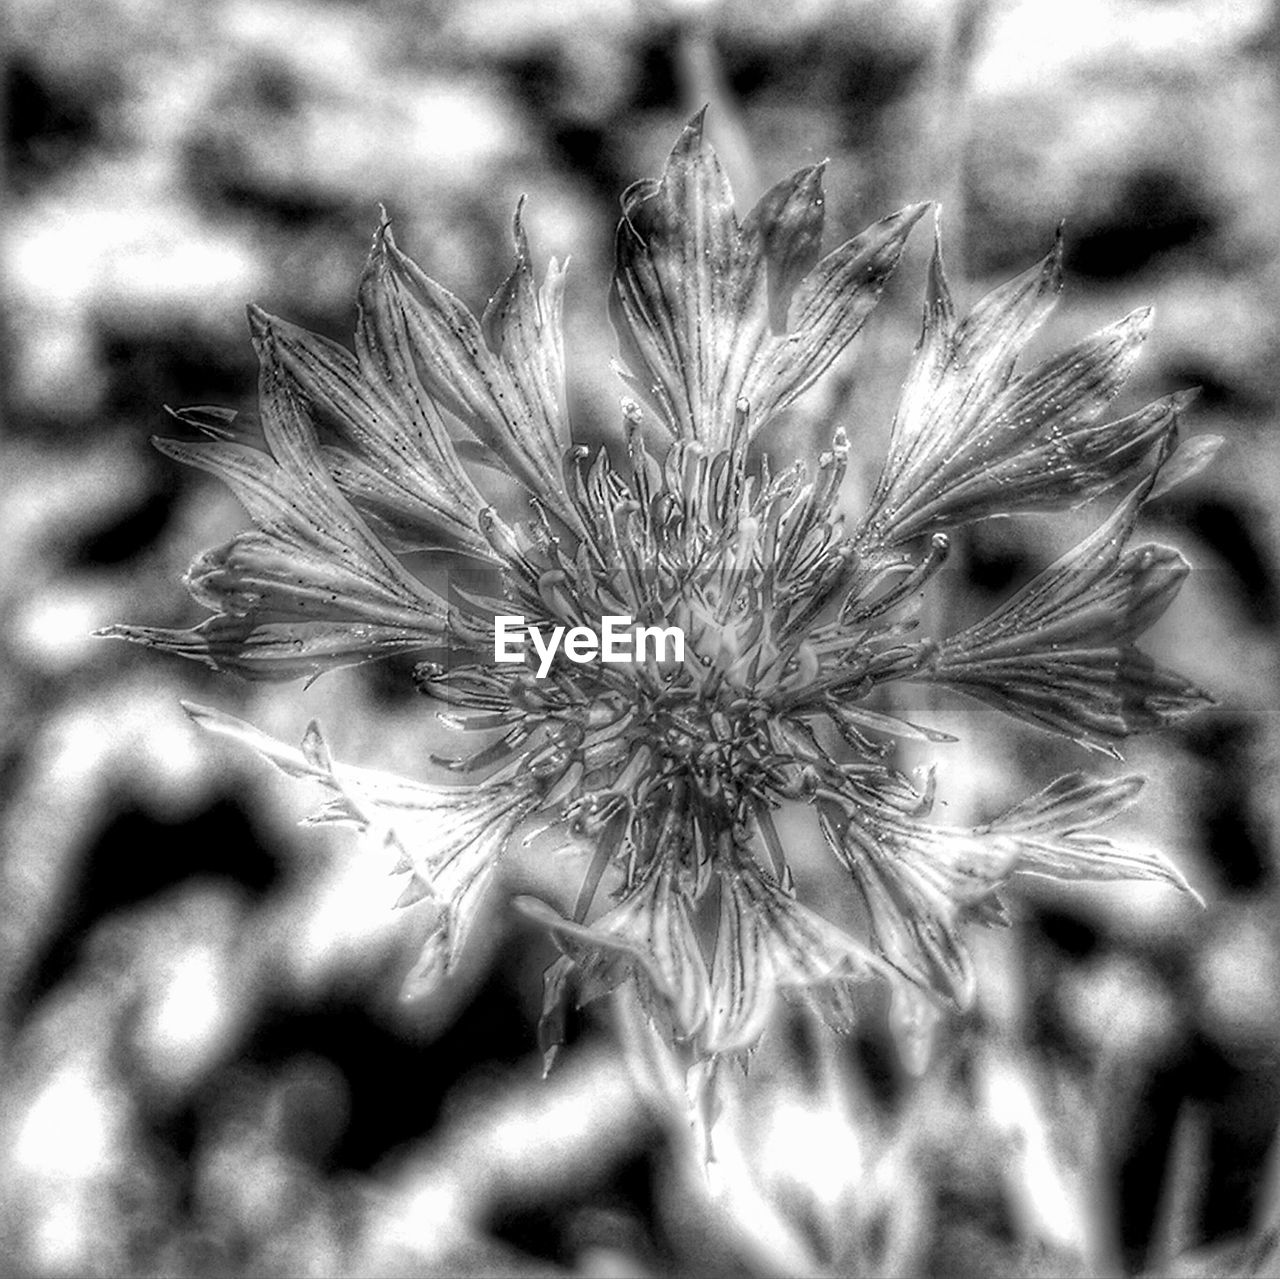 flower, flowering plant, fragility, vulnerability, plant, beauty in nature, freshness, growth, close-up, nature, no people, inflorescence, day, focus on foreground, dandelion, flower head, selective focus, tranquility, field, outdoors, softness, pollen, dandelion seed, focus